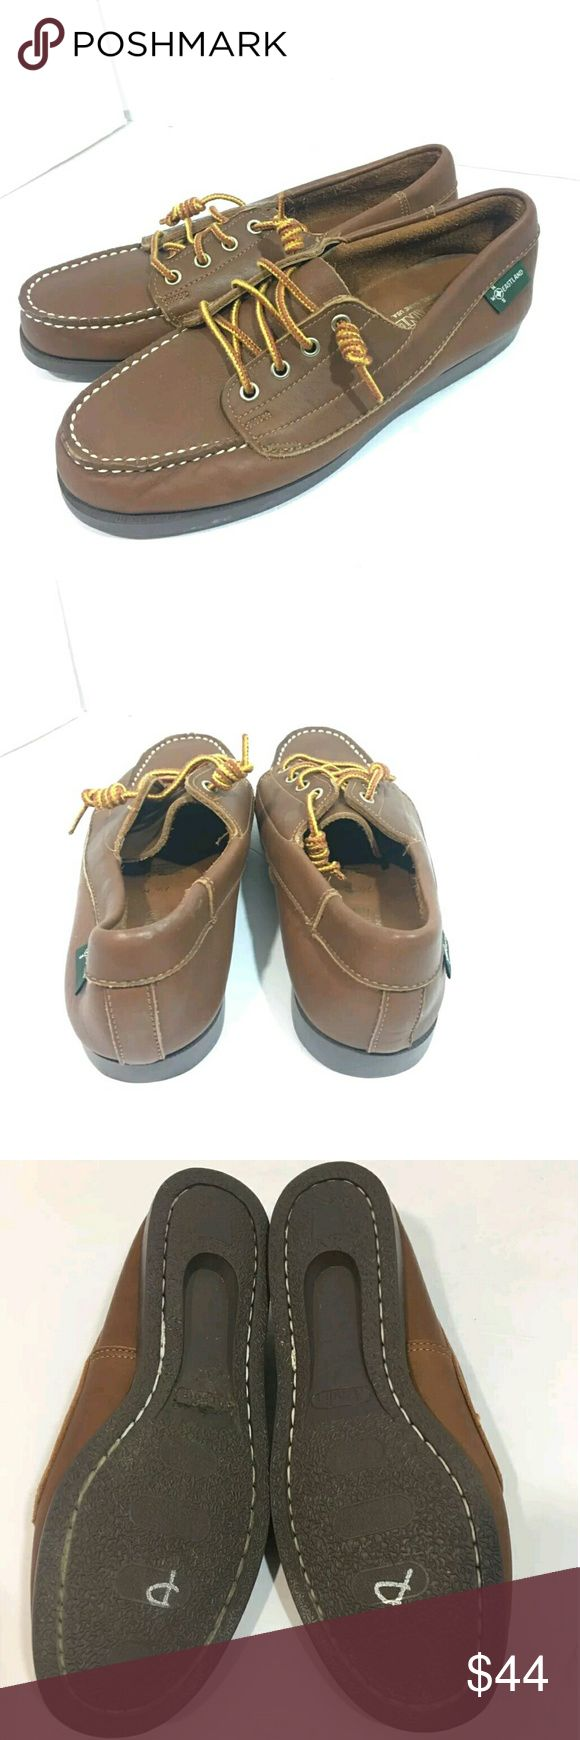 Eastland Shoes Women's 7.5 Low Loafer Oxfords Eastland Shoes Women's 7.5 Low Loafer Oxfords Leather Brown  Excellent used condition.   Pre-owned item condition. Item has little to no signs of wear unless specifically stated. Please carefully review item details and uploaded pictures for details of this item before bidding or buying. Item is functional and ready for your closet!     MS Eastland Shoes Flats & Loafers